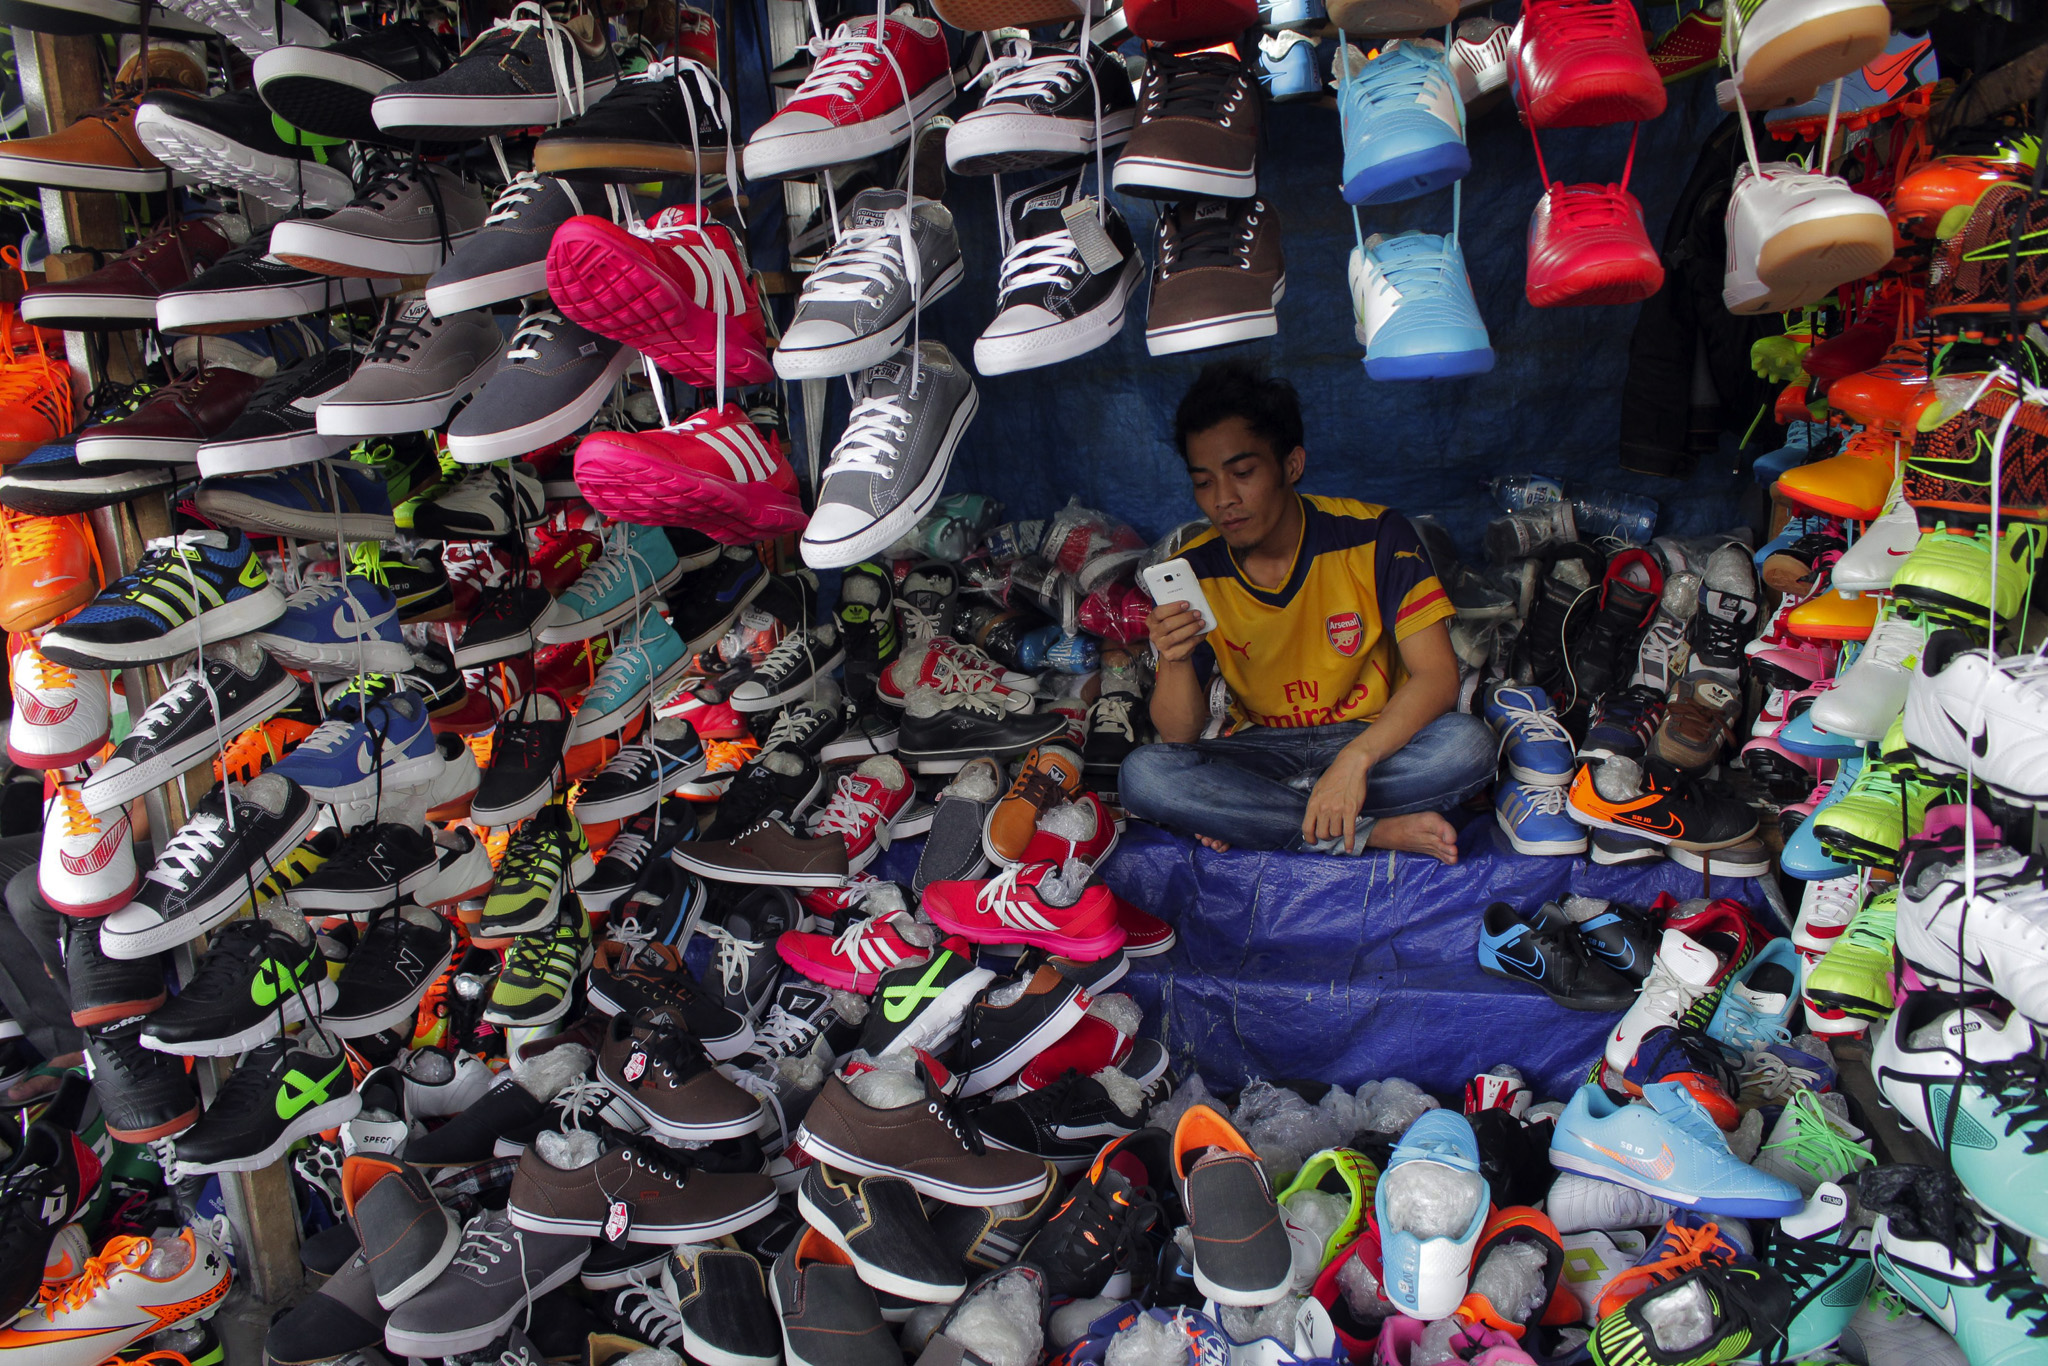 A shoe seller waits for customers at a market in Bogor, Indonesia